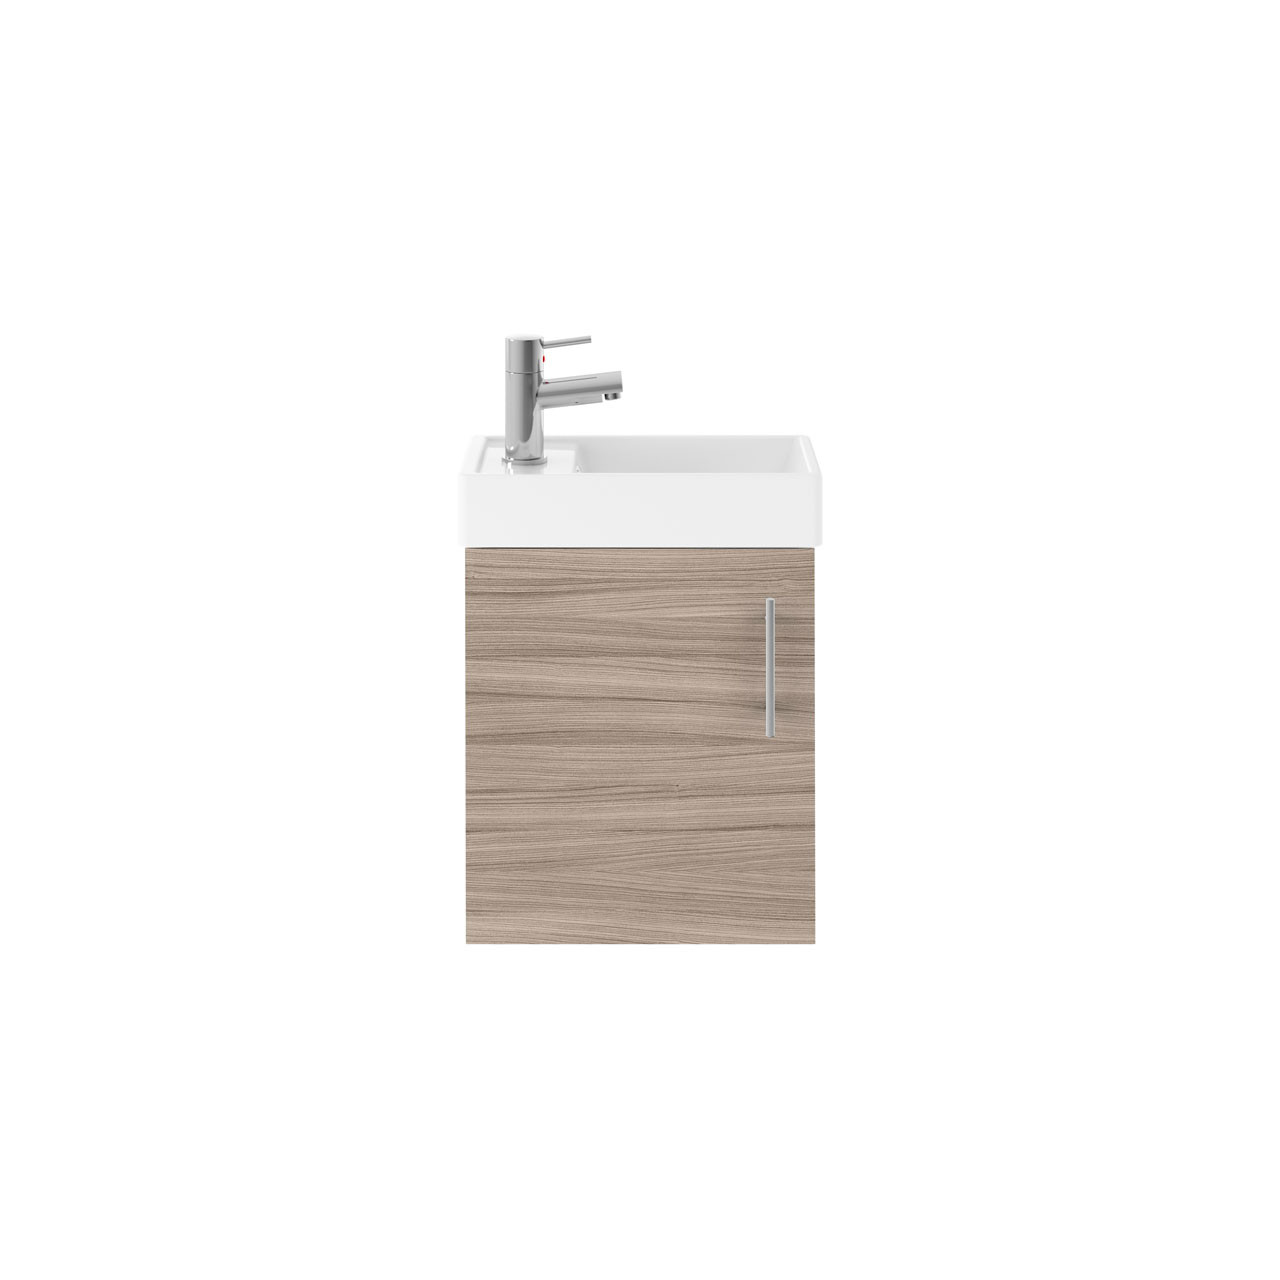 Premier Valut Driftwood 400mm Wall Hung Single Door Vanity Unit and Compact Basin - MIN007